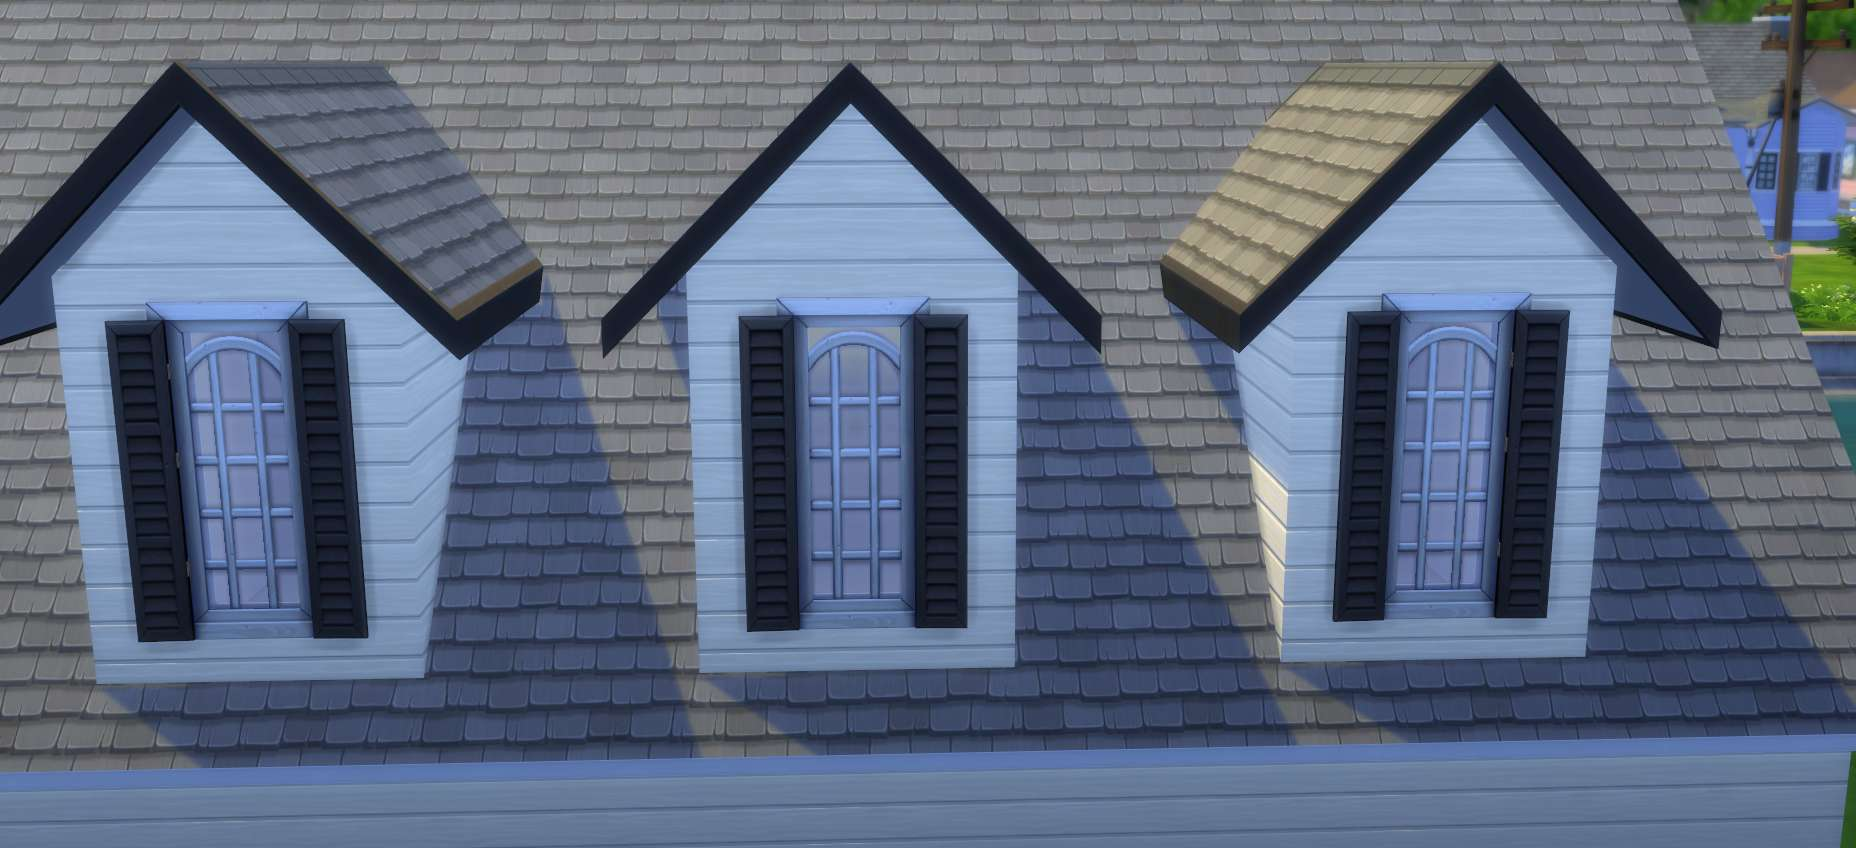 Sims 4 building split levels lofts and dormer windows for Advanced home